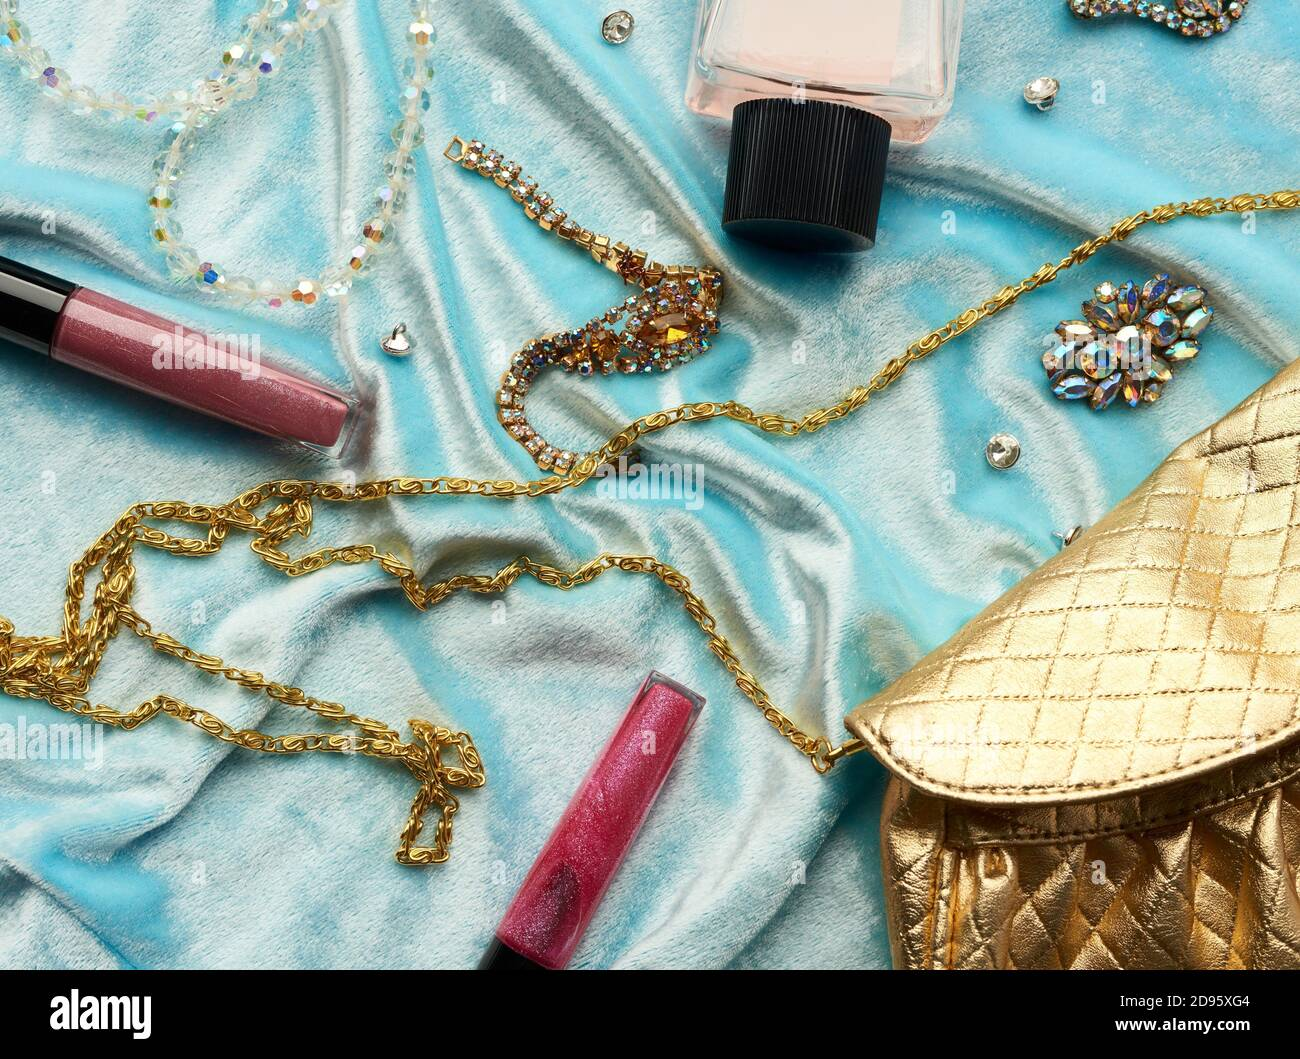 golden handbag, lip gloss and beads on a blue background, top view. Stock Photo